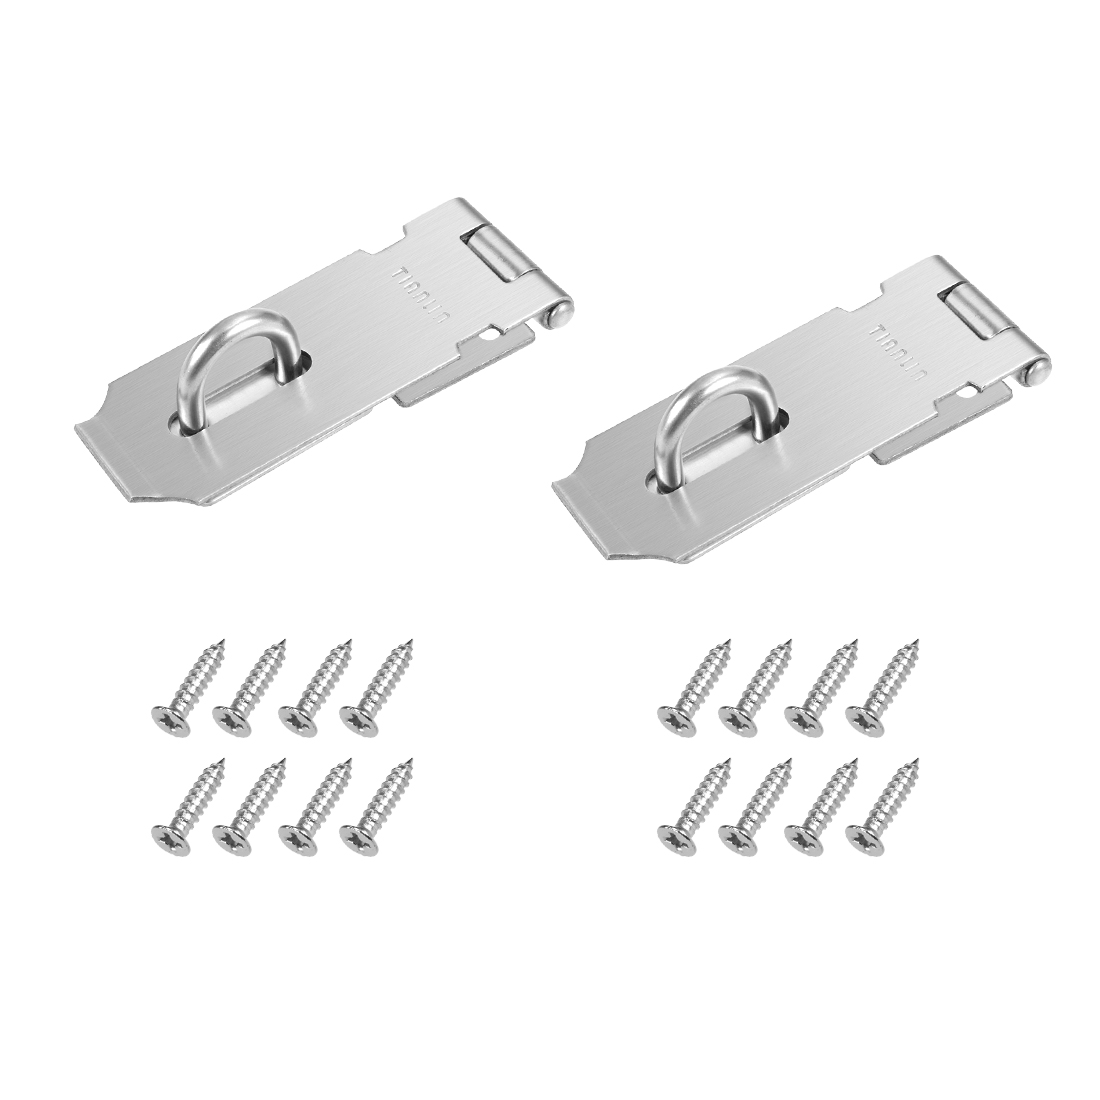 Hasp Staple Gate Latches Lock with Screws,109mm Length,Stainless Steel,2pcs